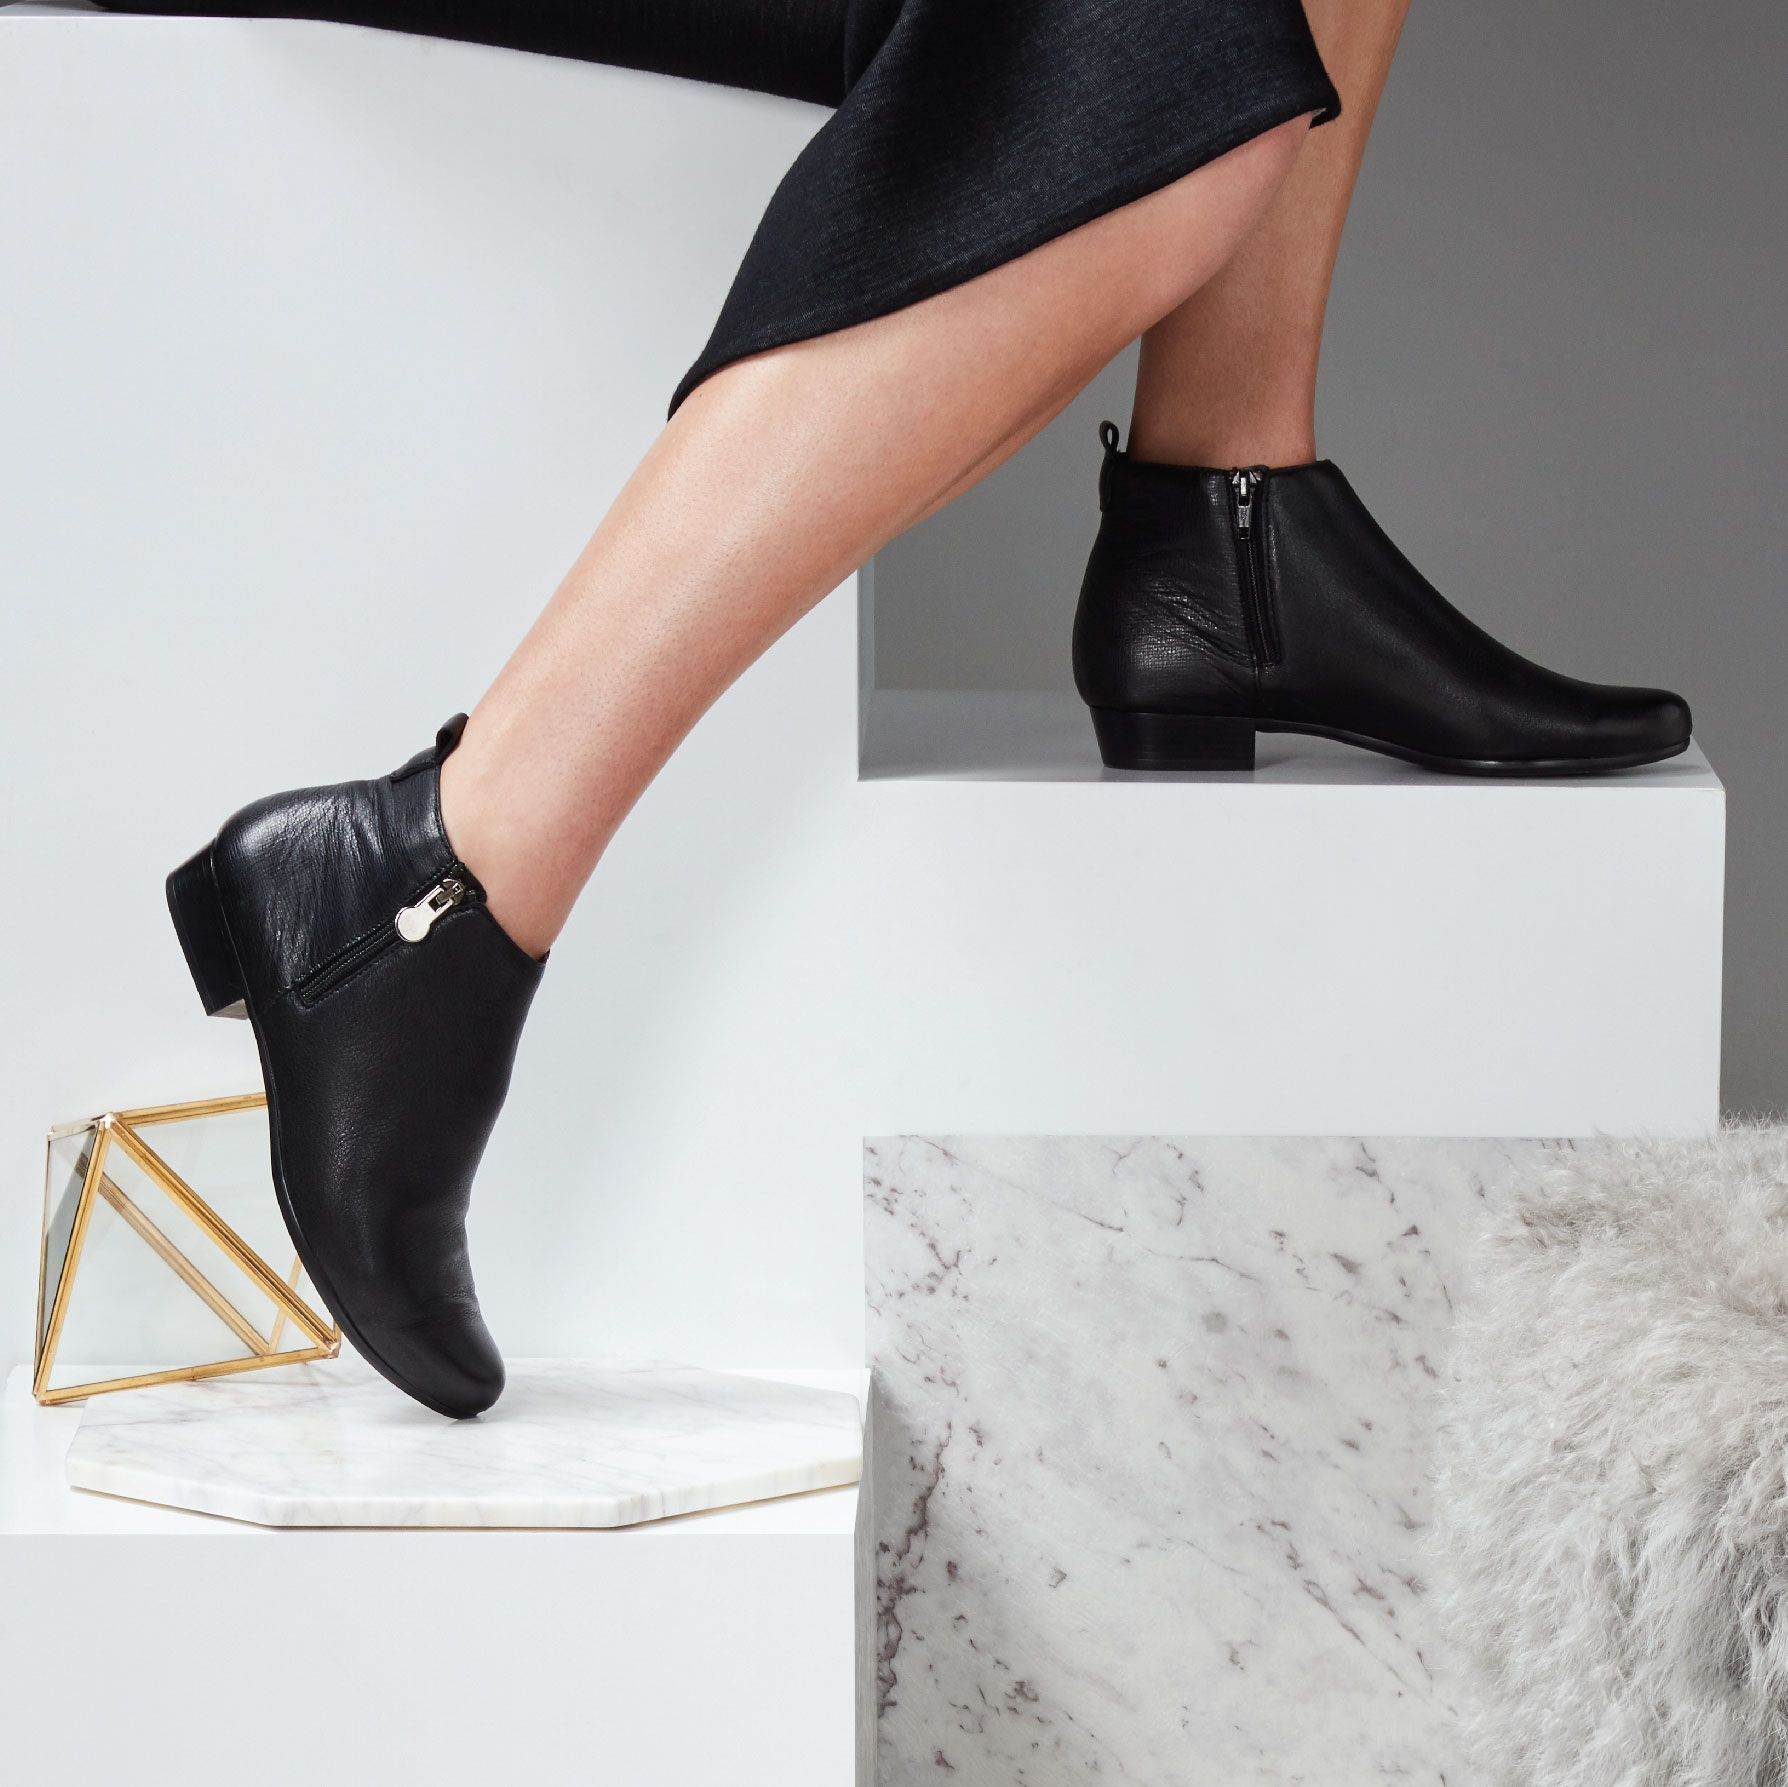 e1a32bba5 One of this season's quintessential ankle boots 'LEXI' by Munro in black  leather. Munro shoes are available in Narrow, Medium, Wide and Extra Wide  fittings.